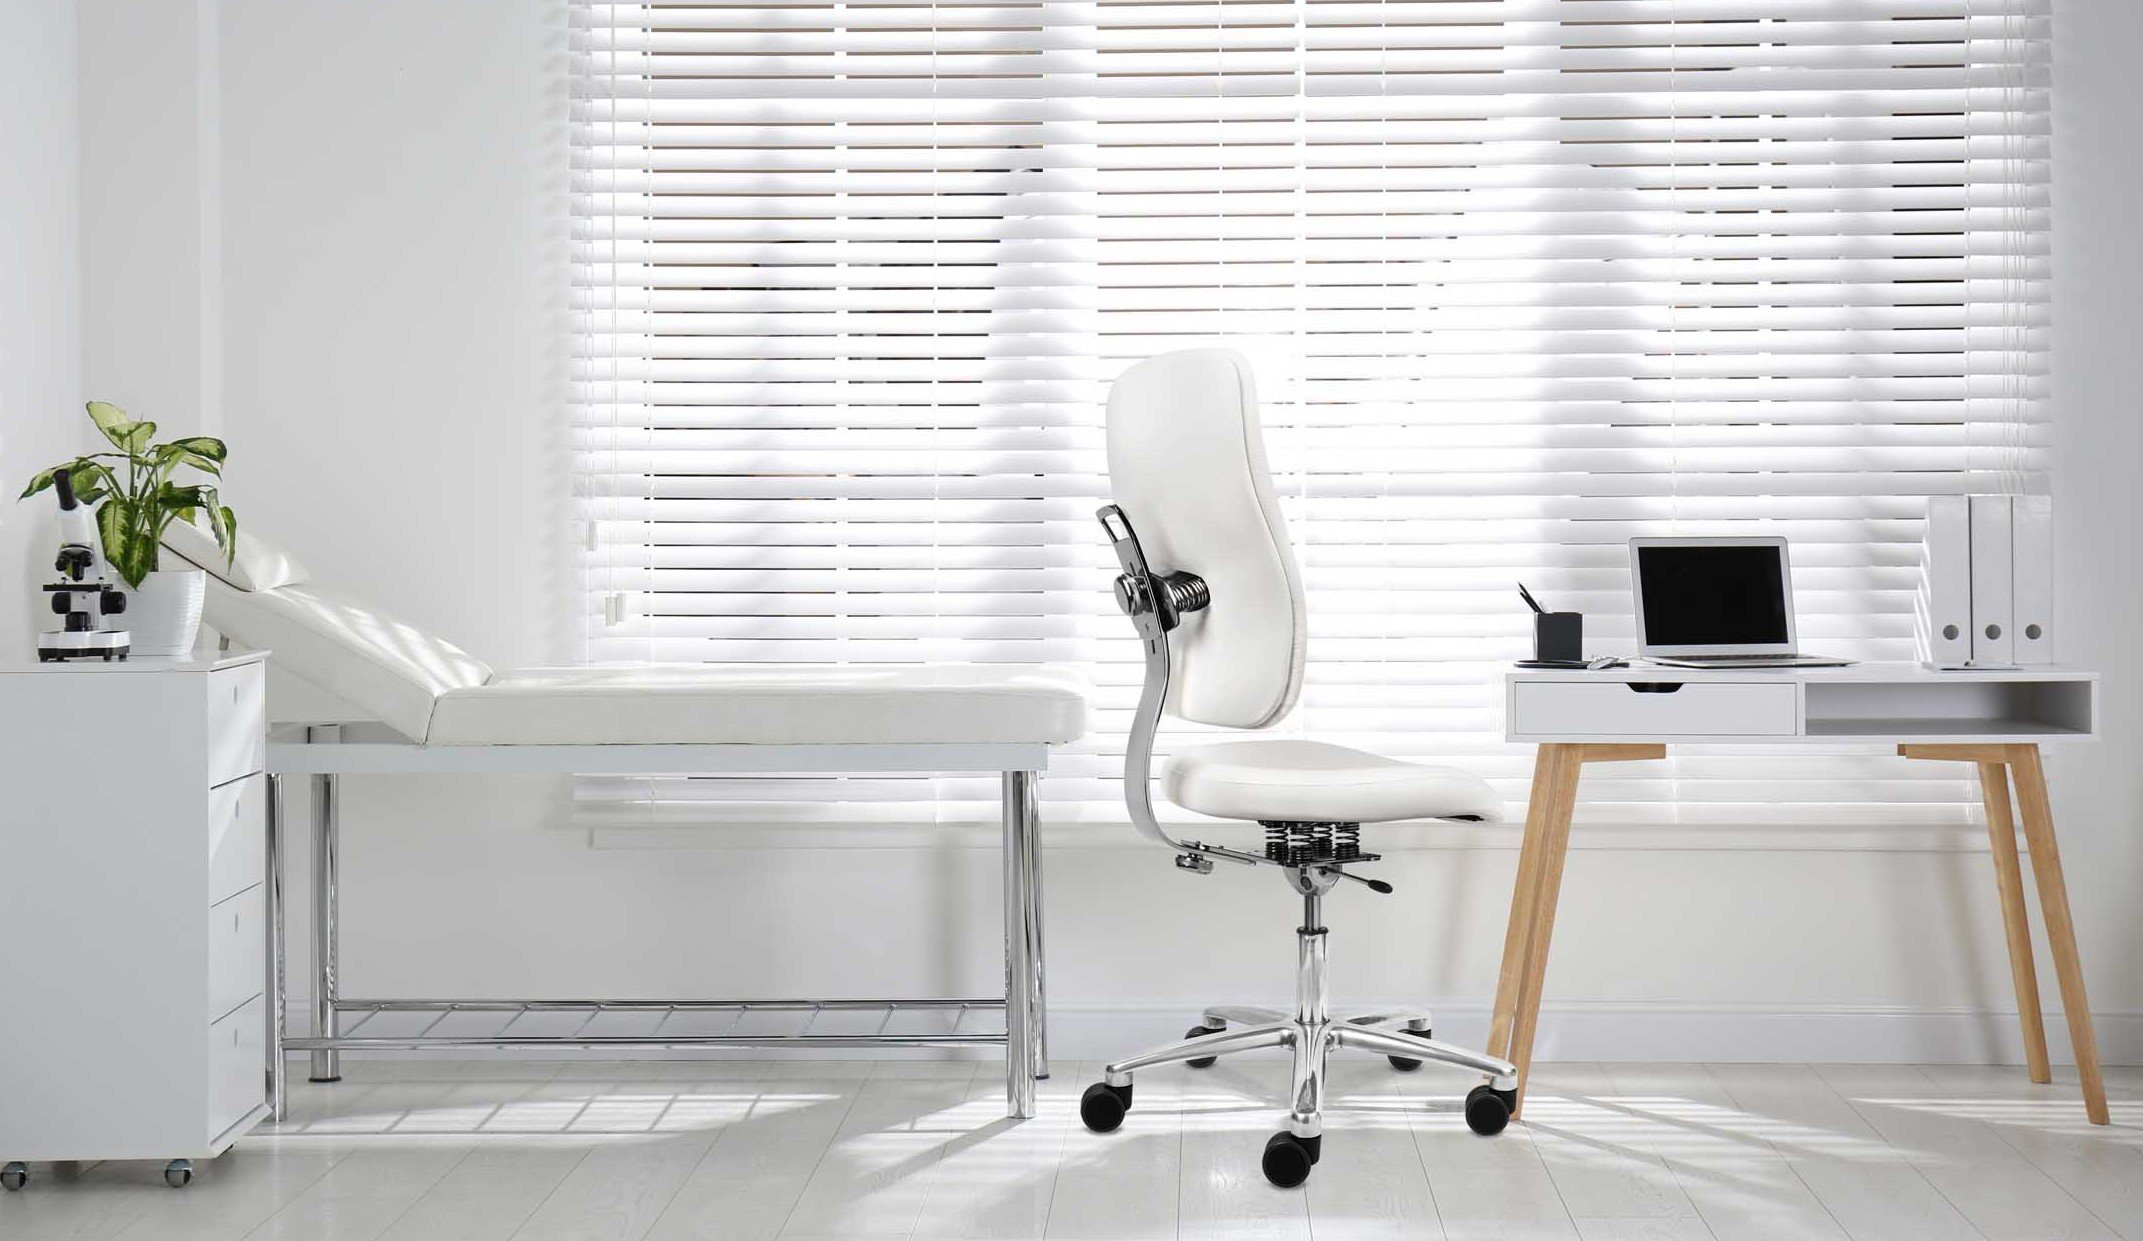 active sitting chair in doctor's surgery